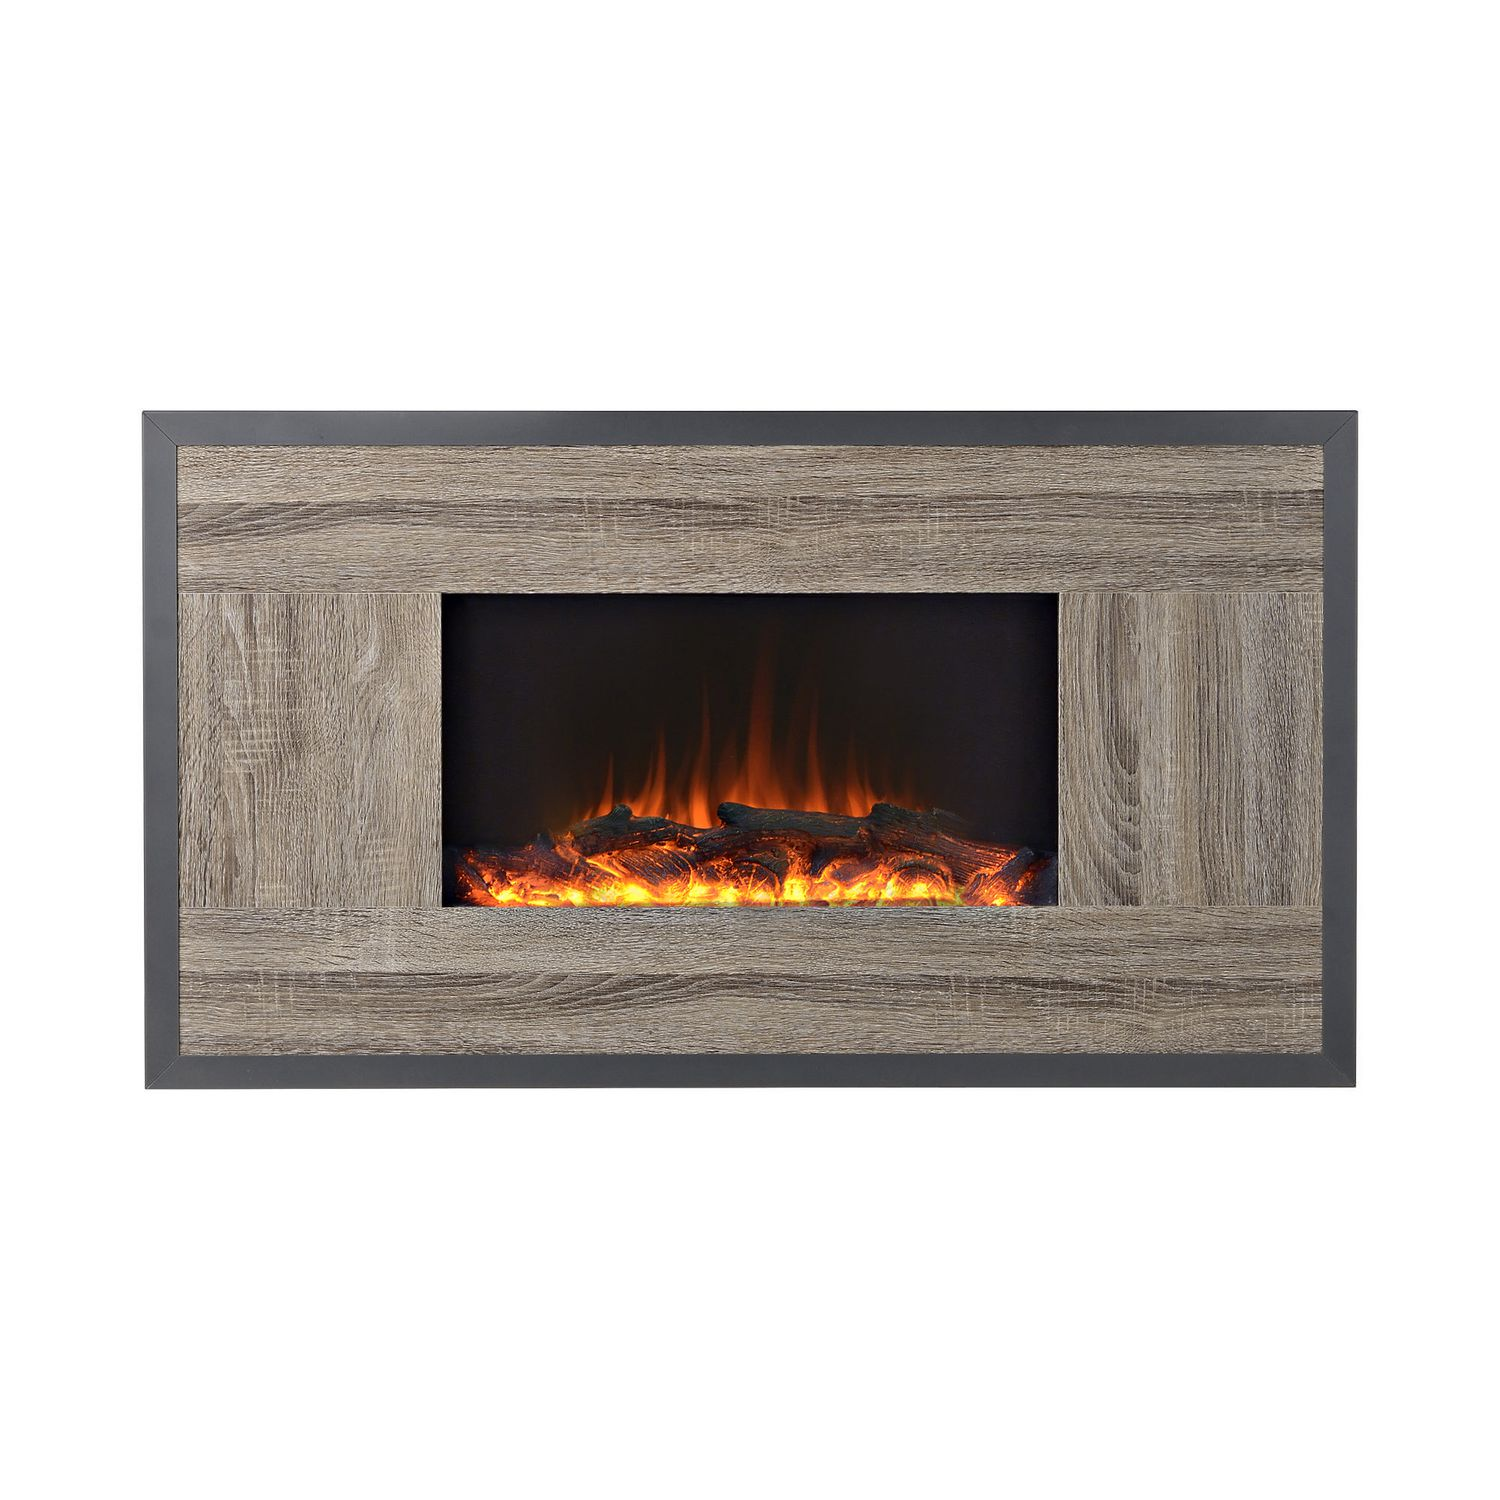 flamelux oland 41 inches wide wall mount electric firebox walmart electric fireplaces clearance - Electric Fireplaces Clearance